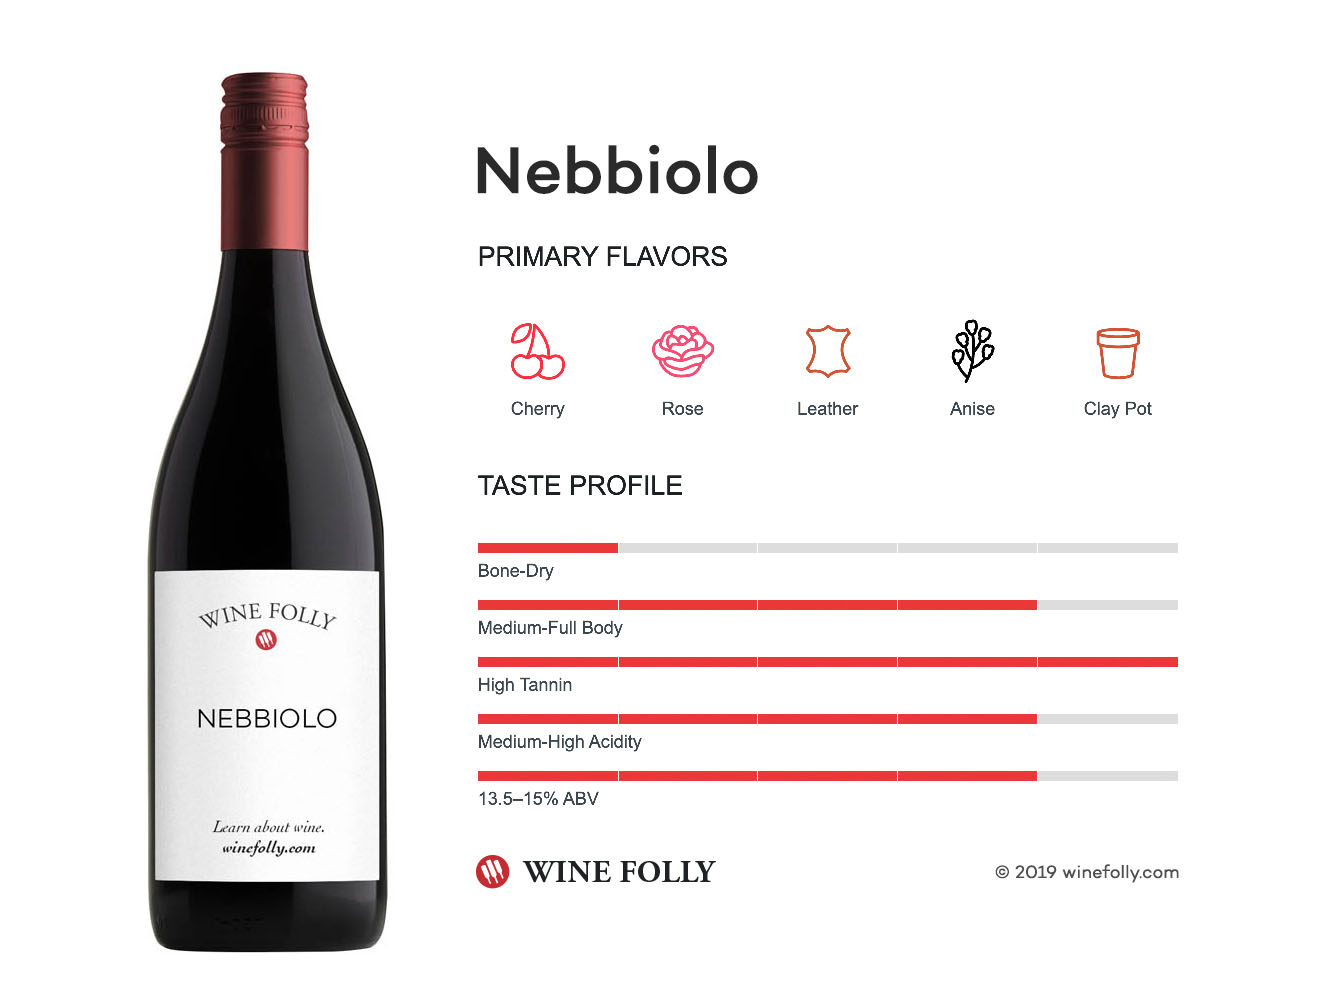 Nebbiolo wine taste profile - infographic by Wine Folly